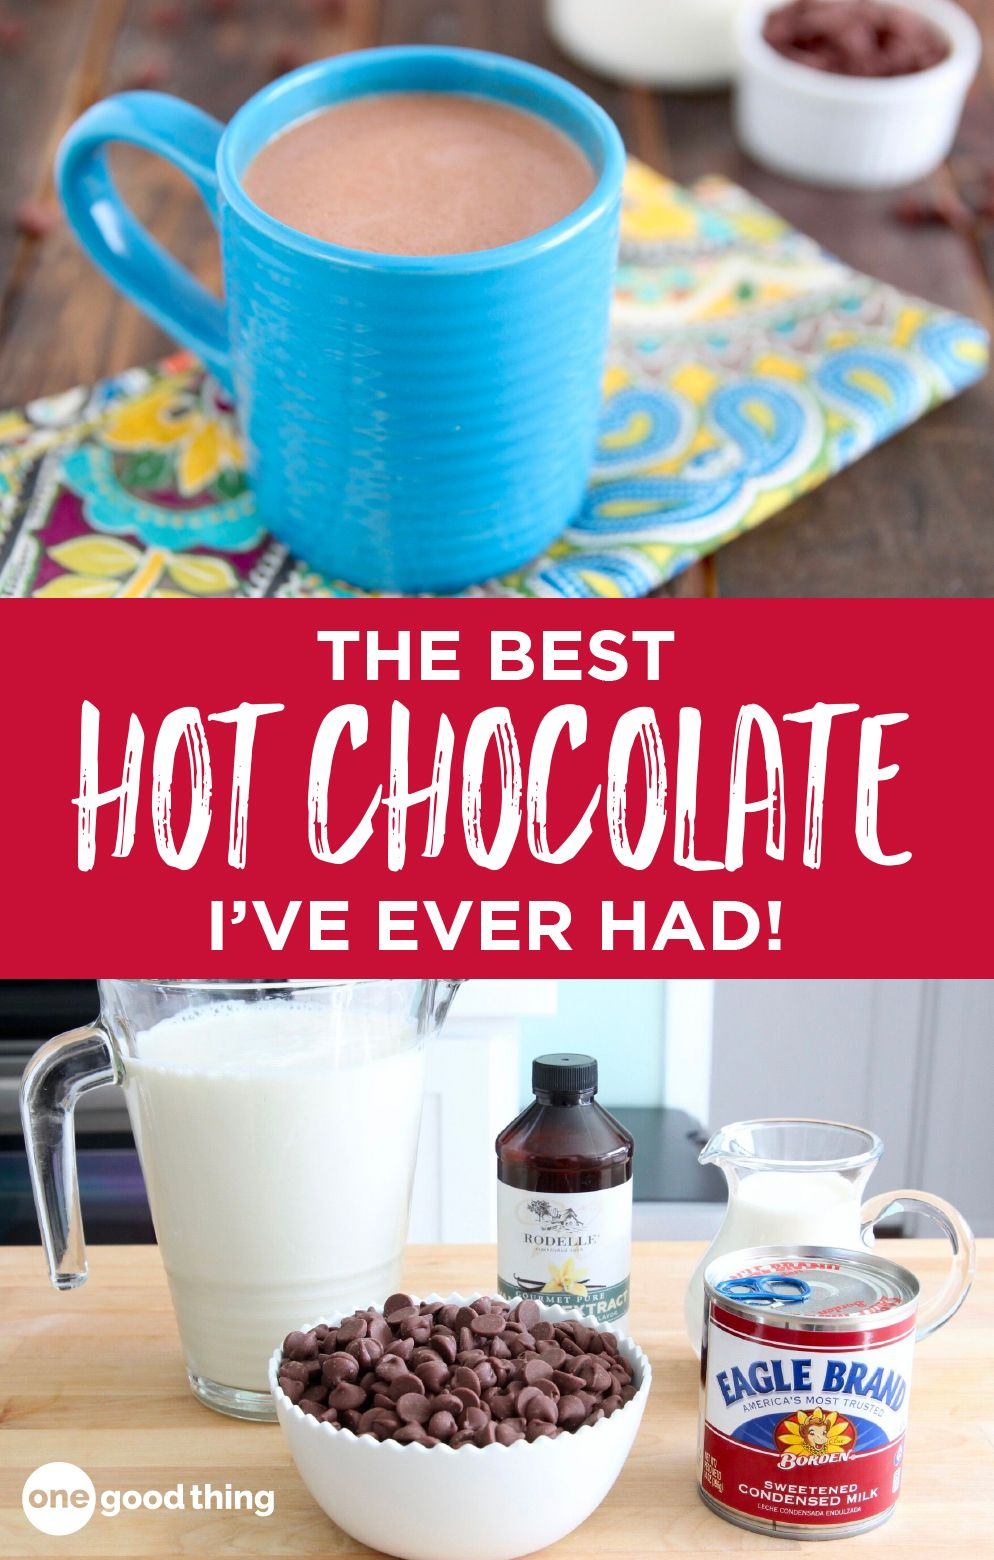 There's nothing more comforting that a creamy cup of hot chocolate on a cold day. This Crockpot Hot Chocolate is the best I've ever tasted! #hotchocolaterecipe